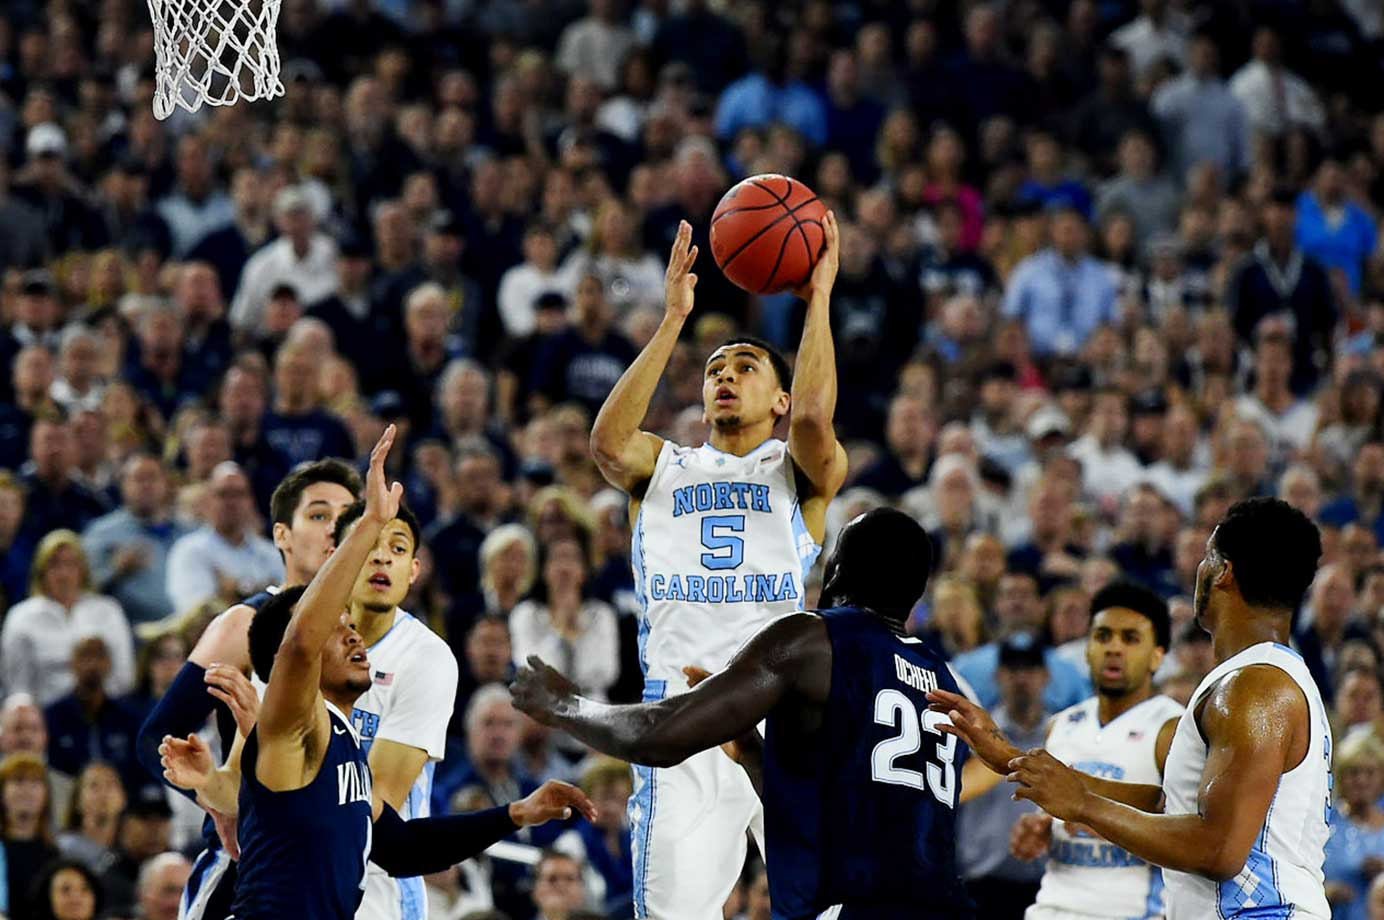 Marcus Paige led Carolina with 21 points.